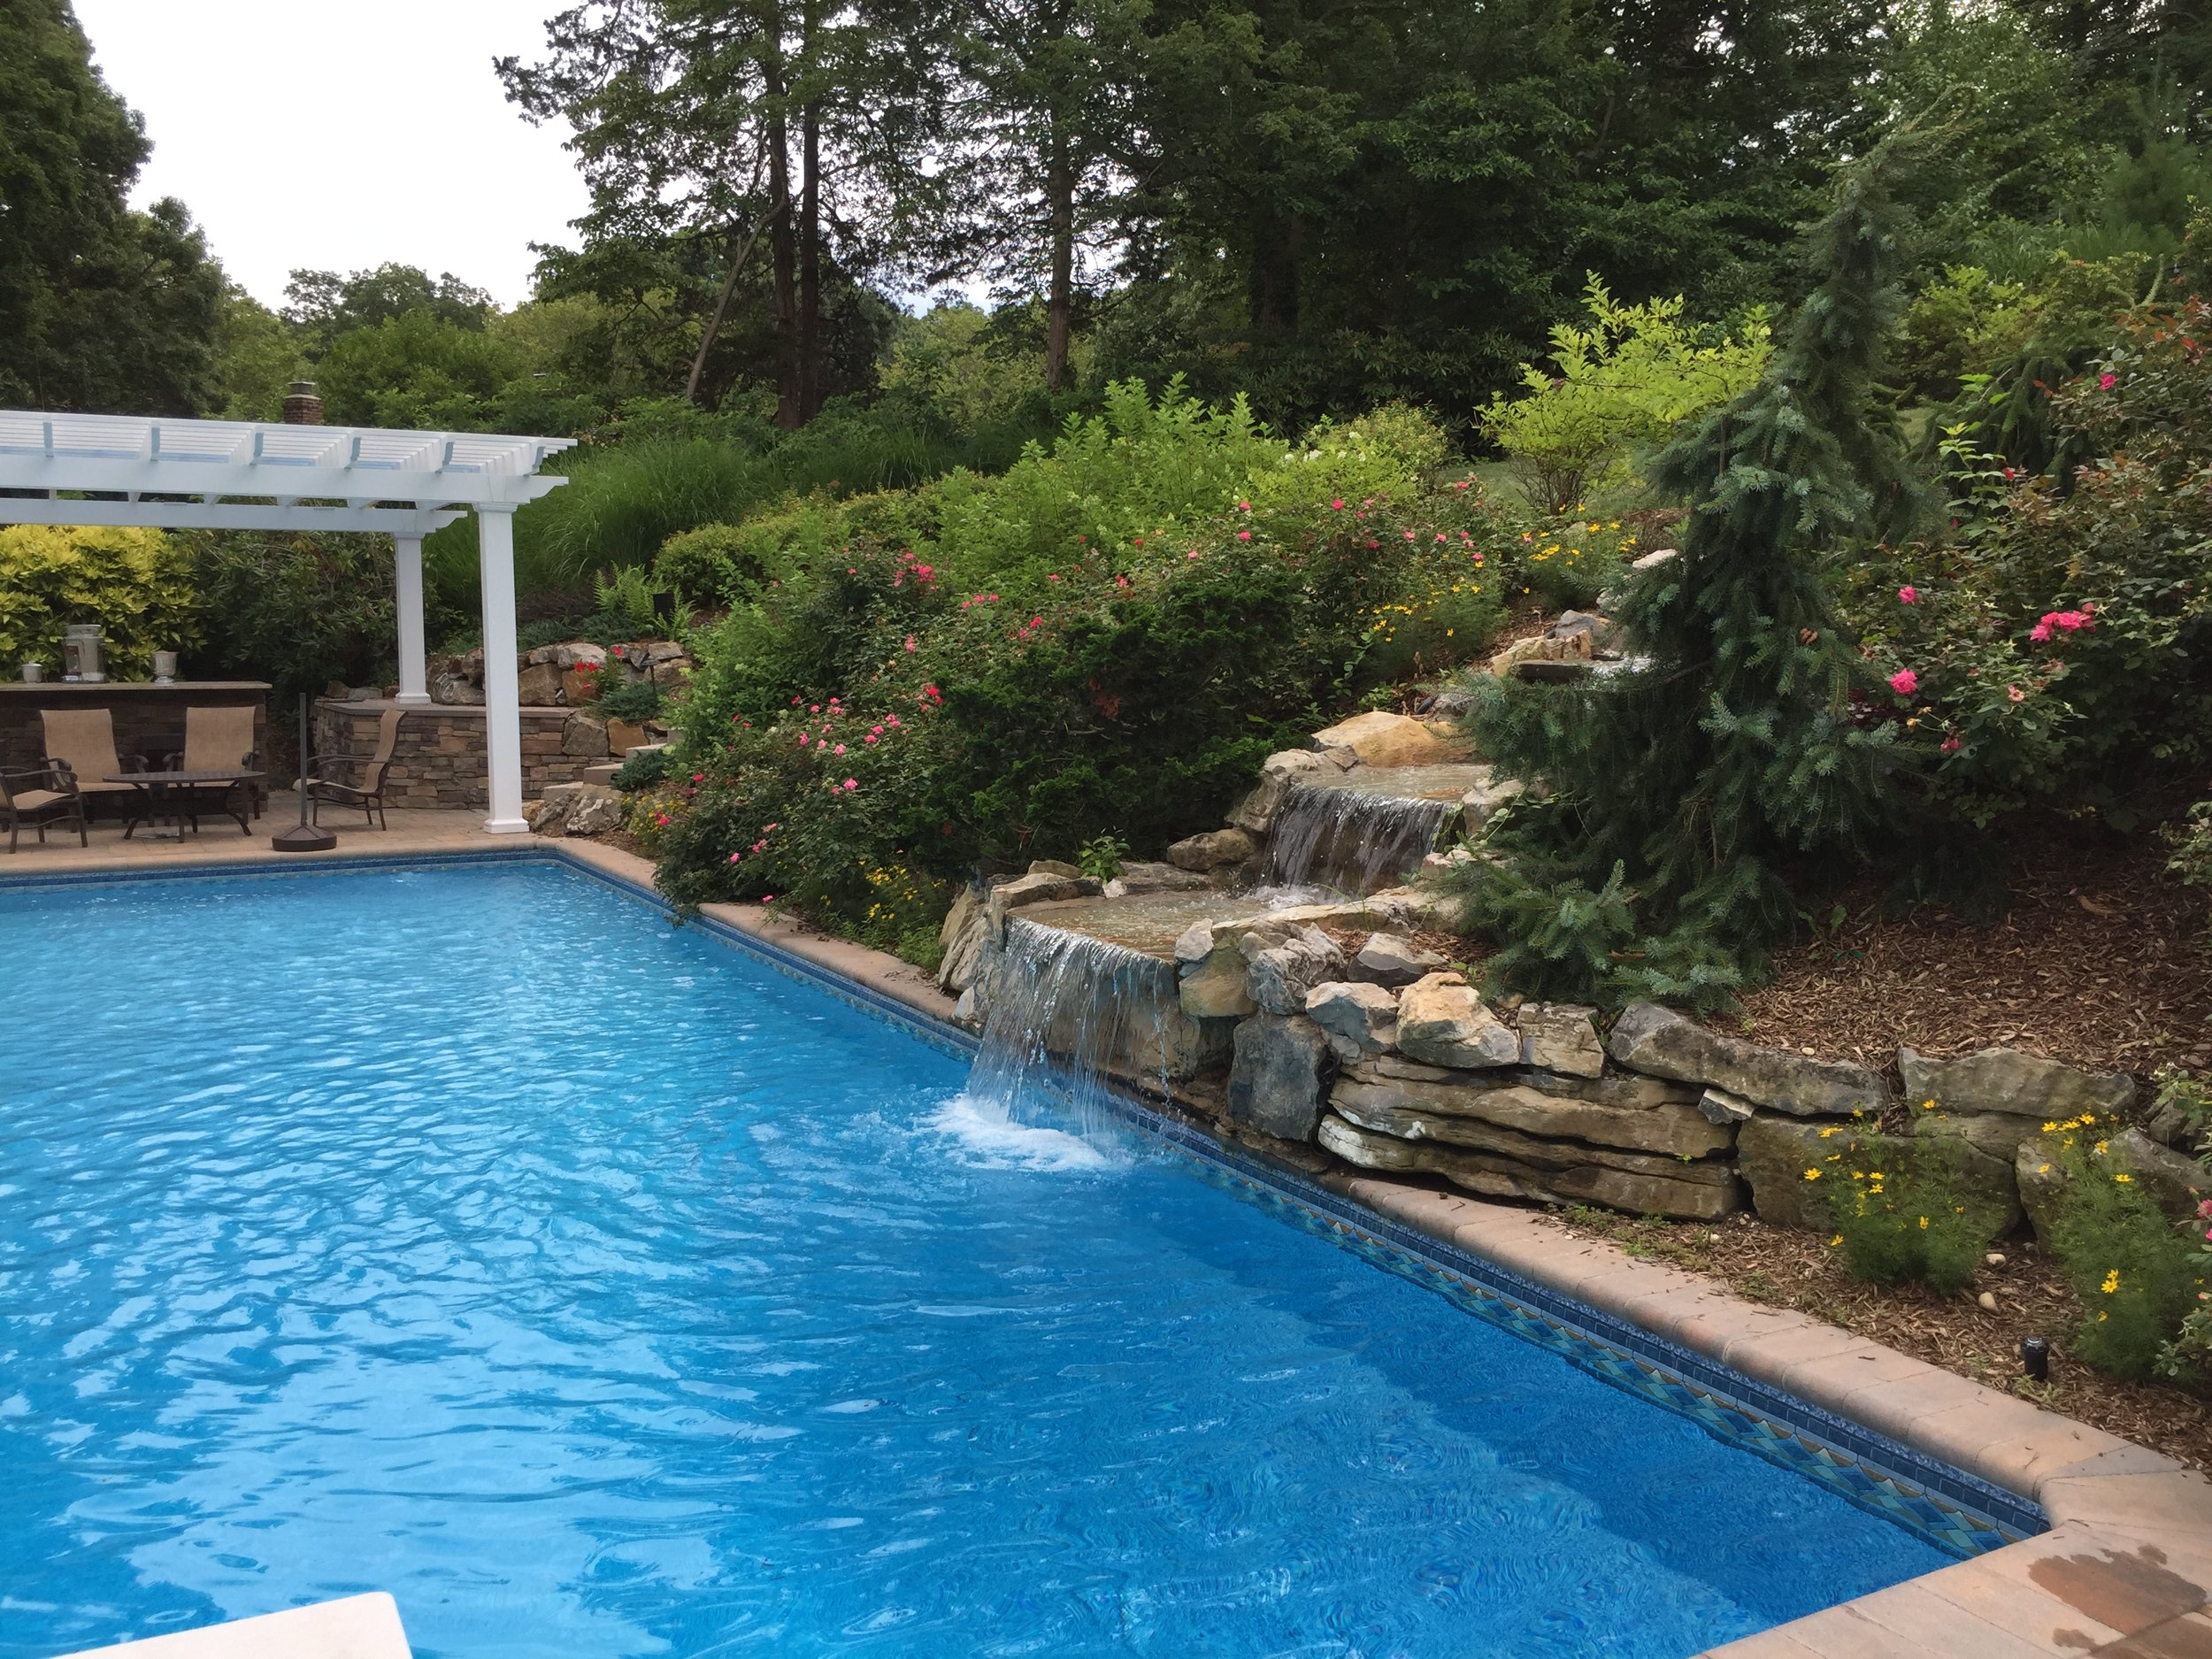 Top pool waterfall design company in Long Island, NY